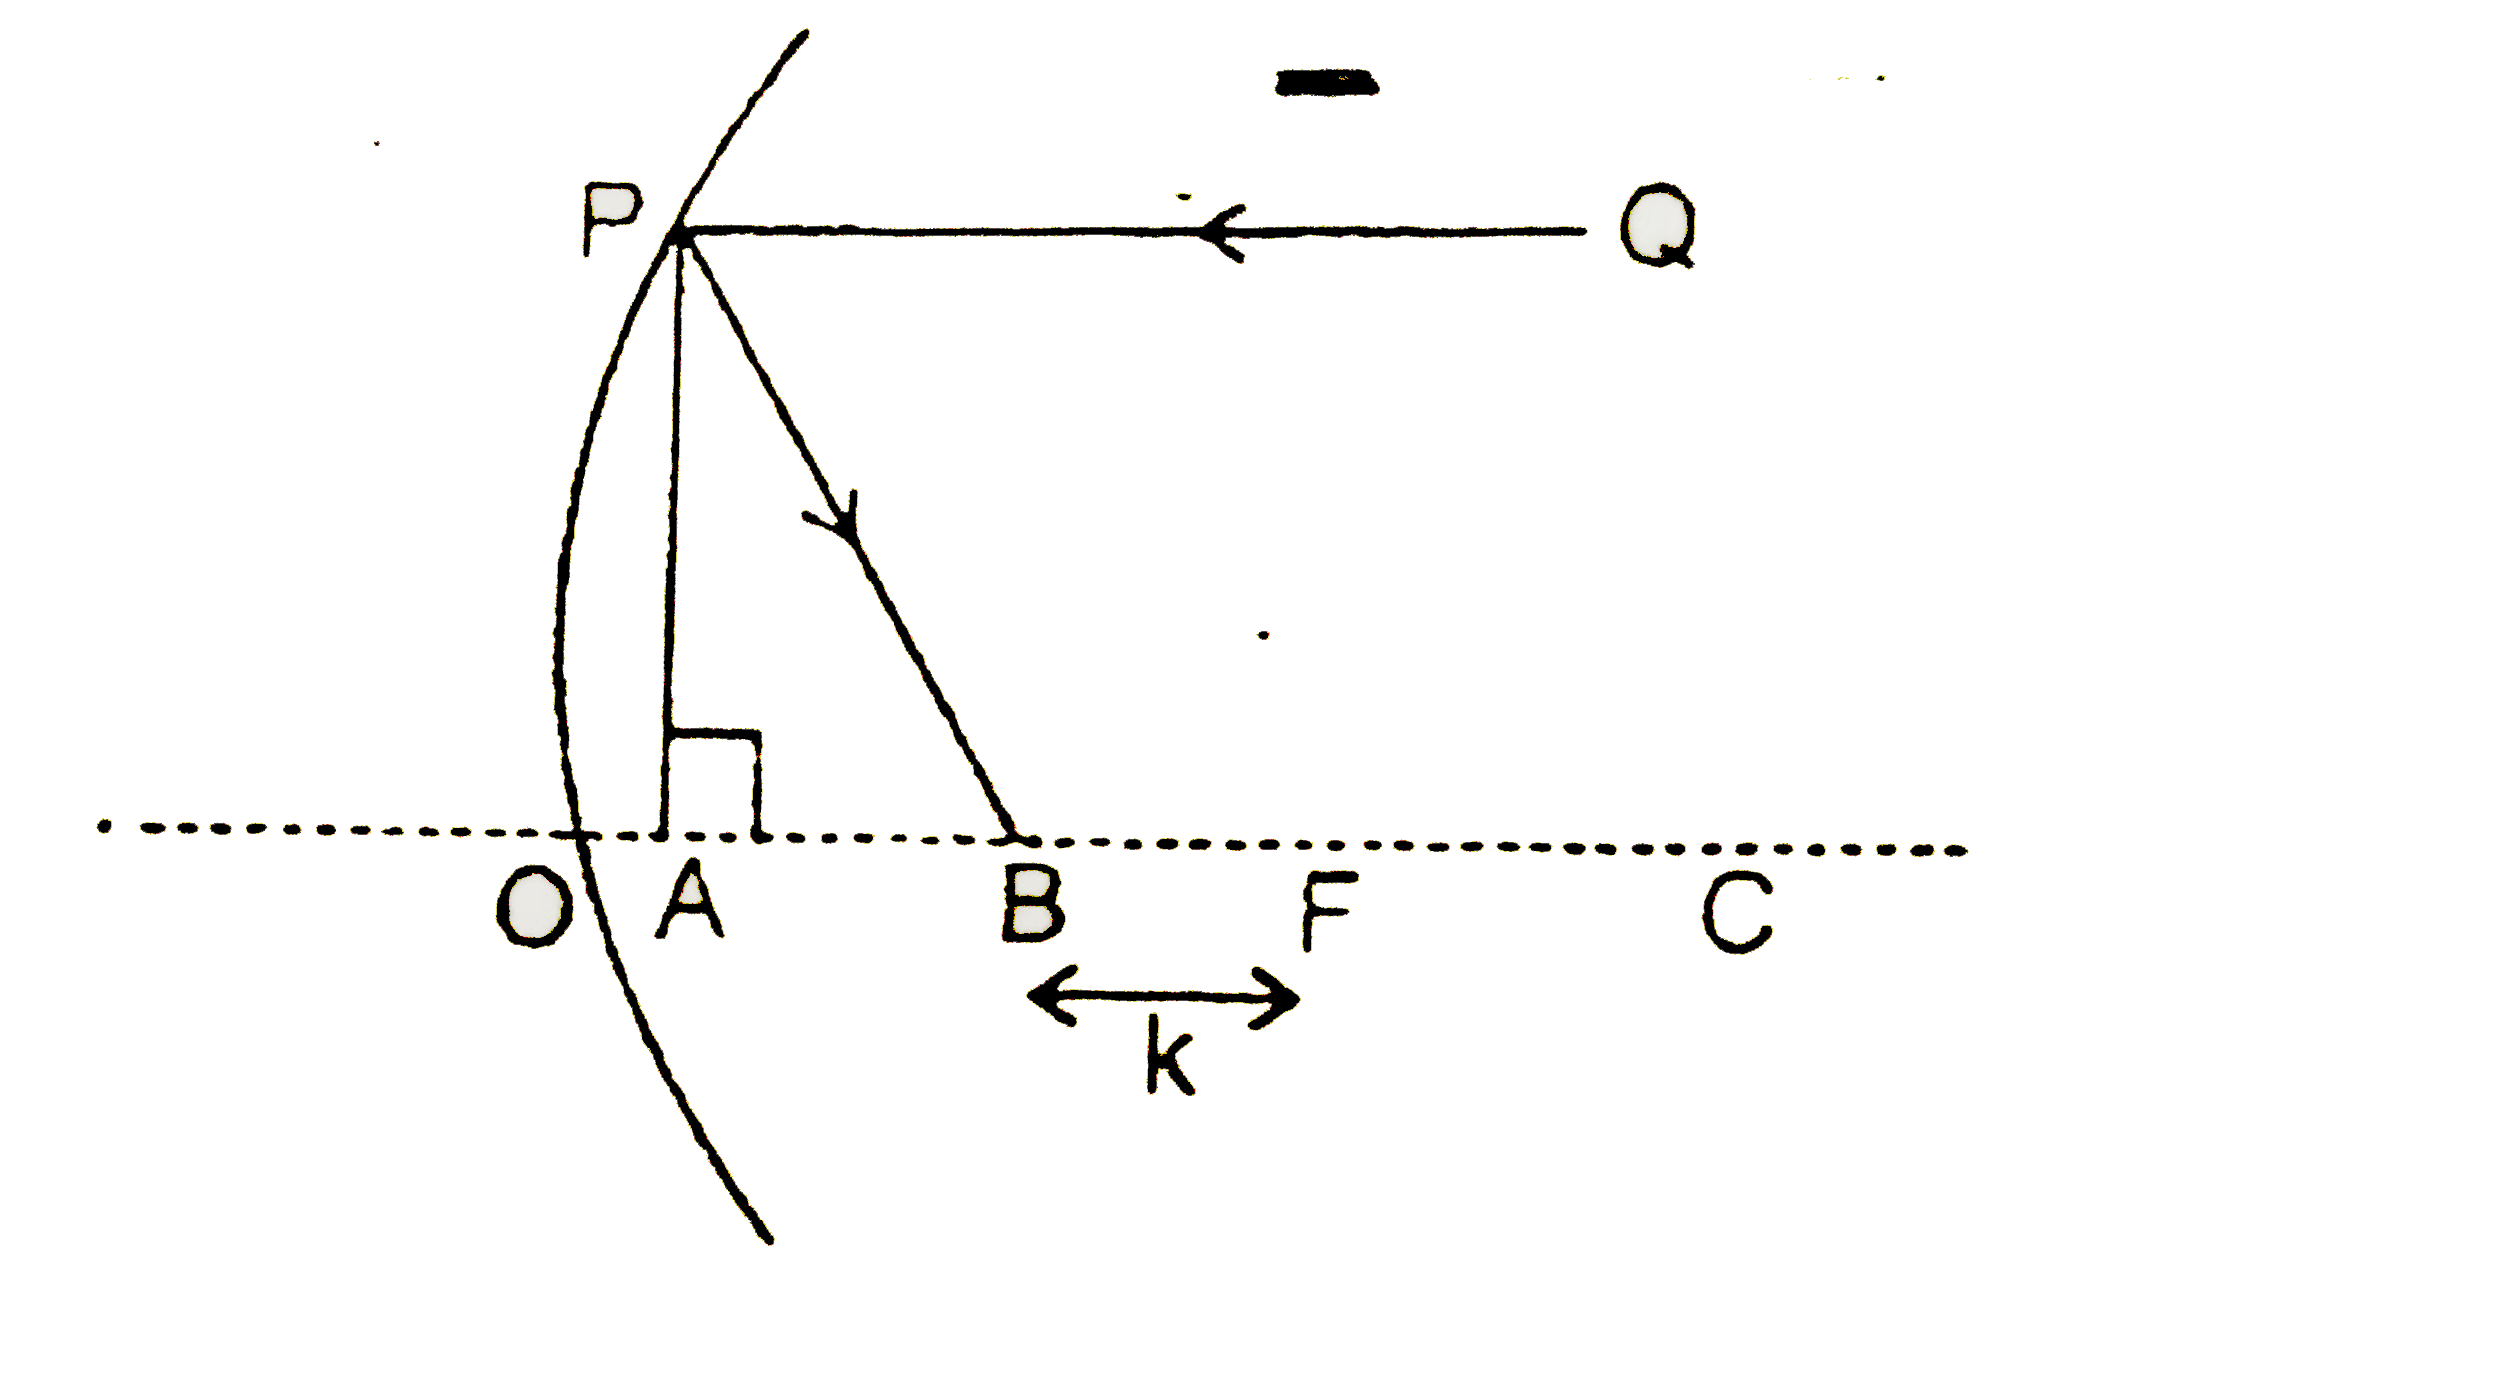 The Figure Below Depicts A Concave Mirror With Center Mirror With